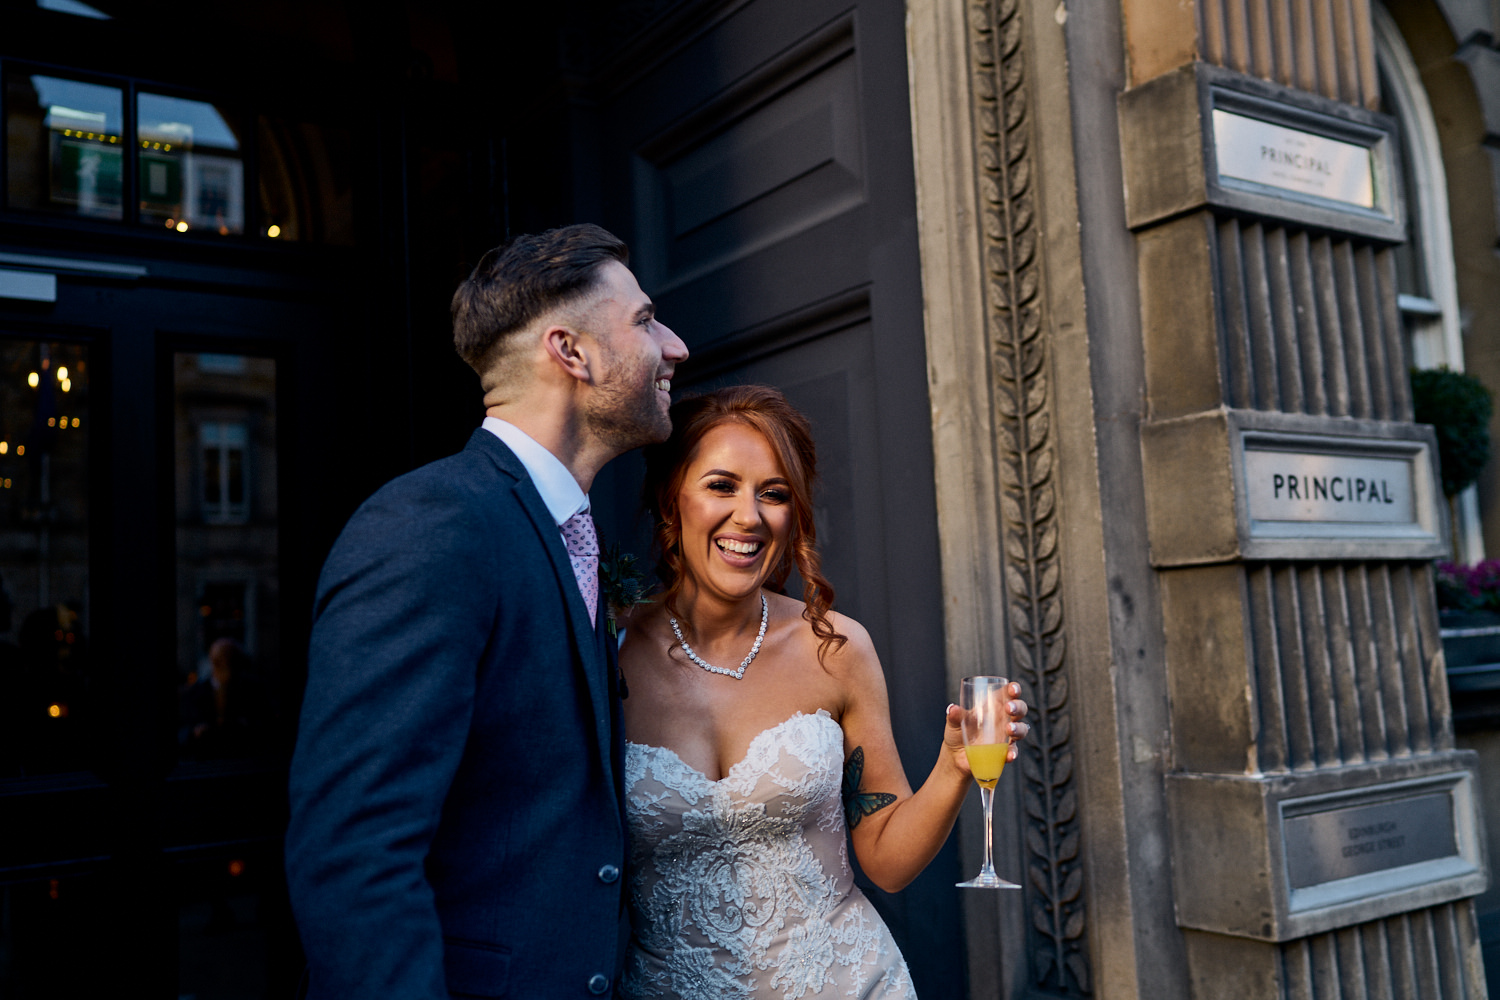 Bride & Groom celebrating outside The Principal Hotel on George Street, Edinburgh